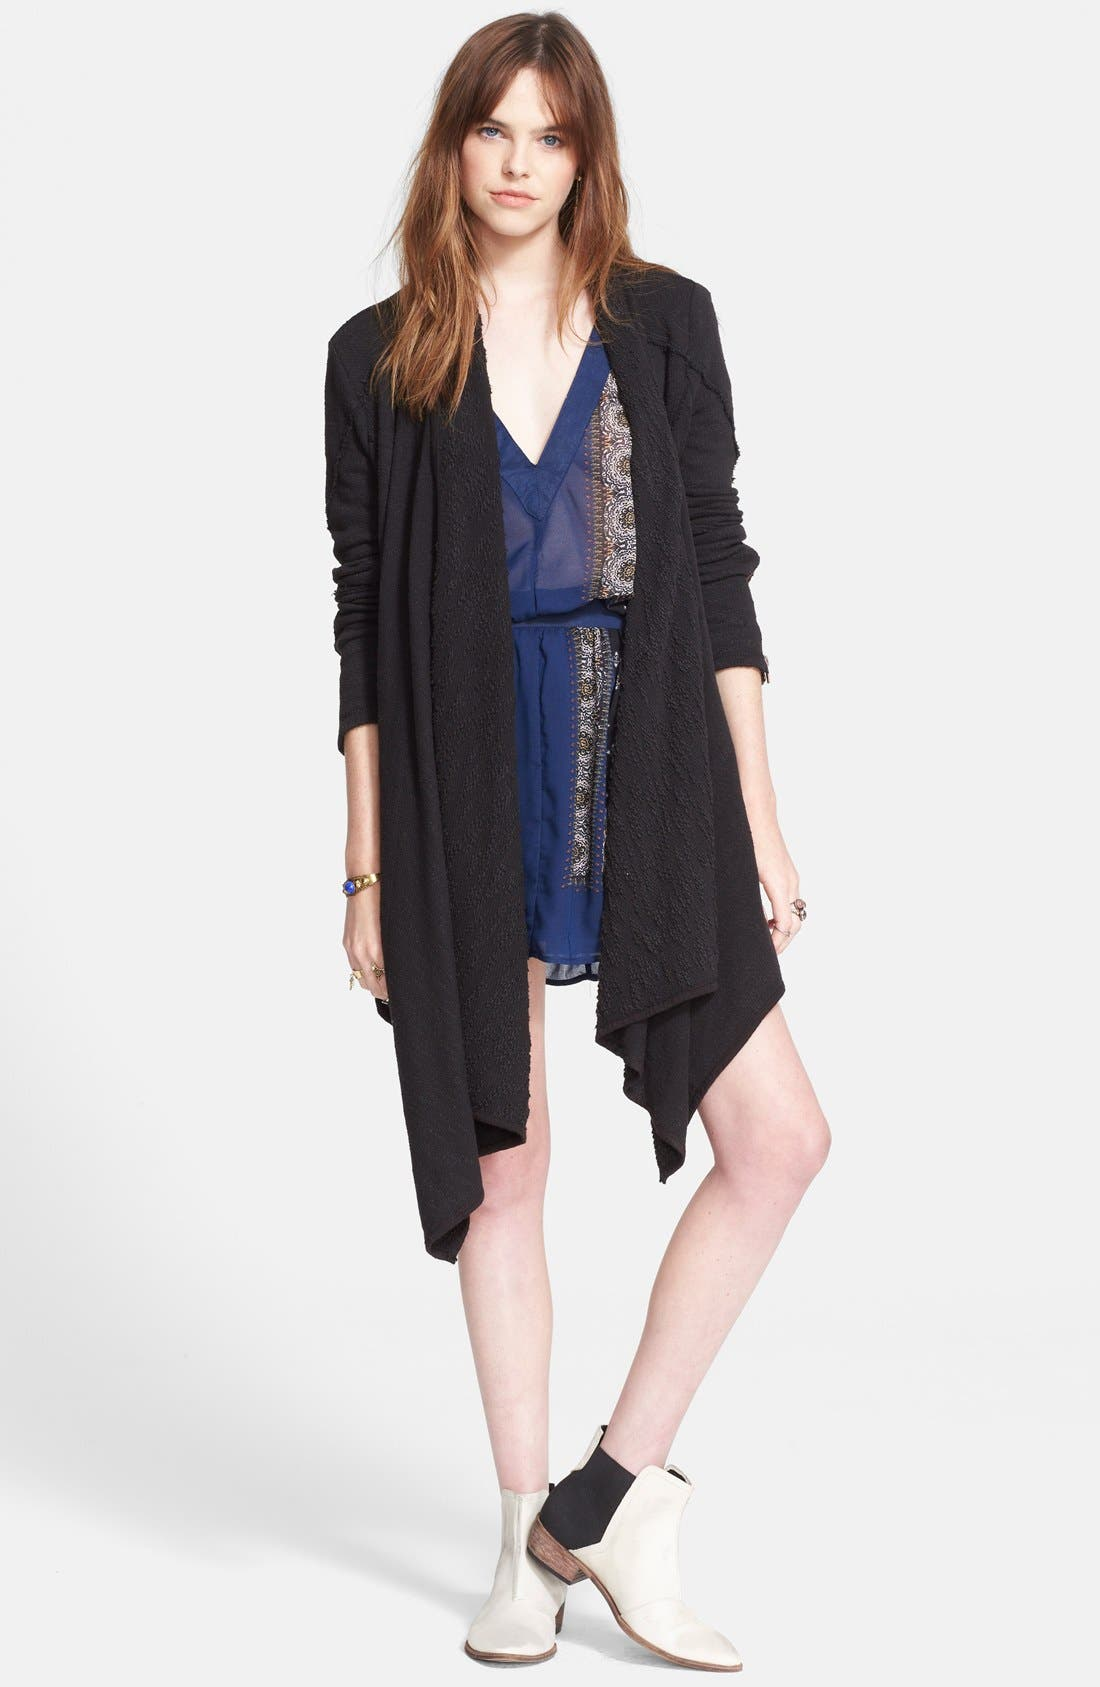 FREE PEOPLE, 'In The Loop' Open Front Cardigan, Main thumbnail 1, color, 001